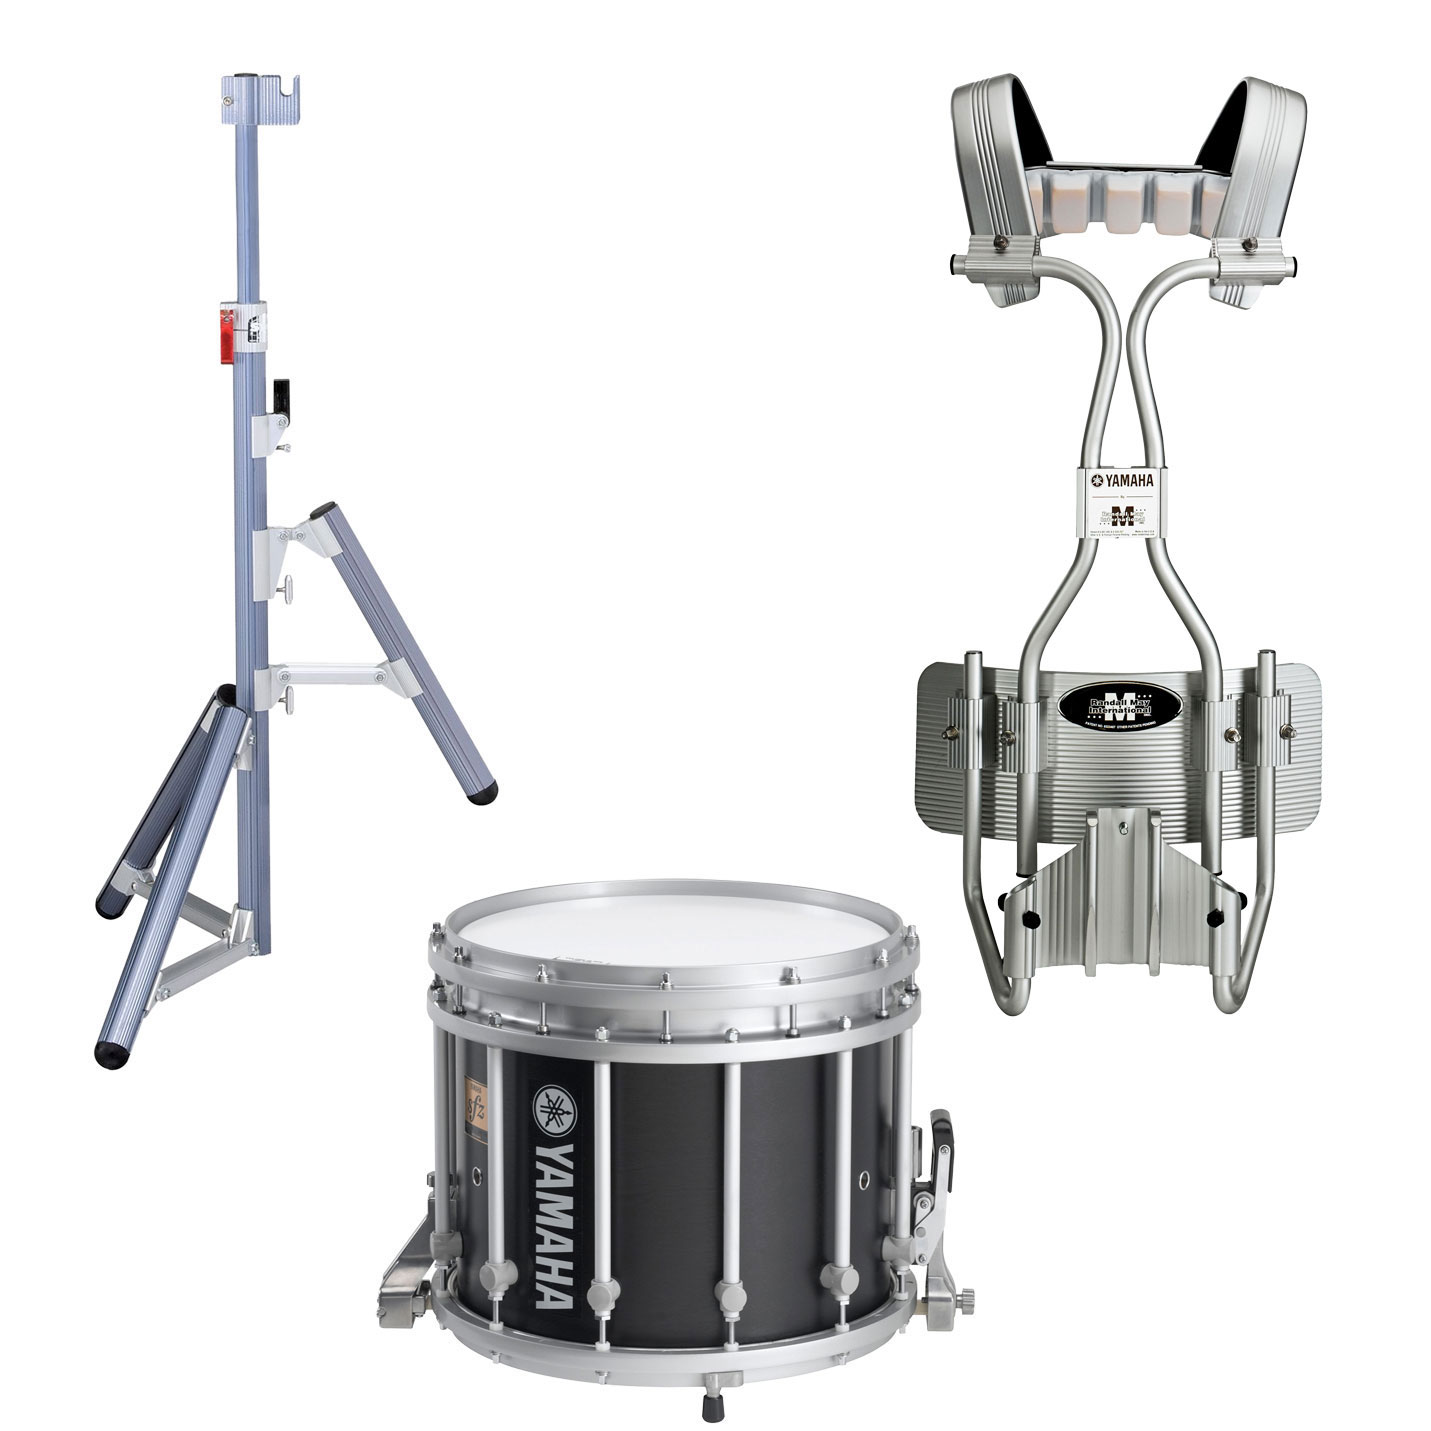 "Yamaha 14"" (Diameter) x 12"" (Deep) 9300 SFZ Marching Snare Drum with Chrome Hardware, Tube Carrier, and Stand"